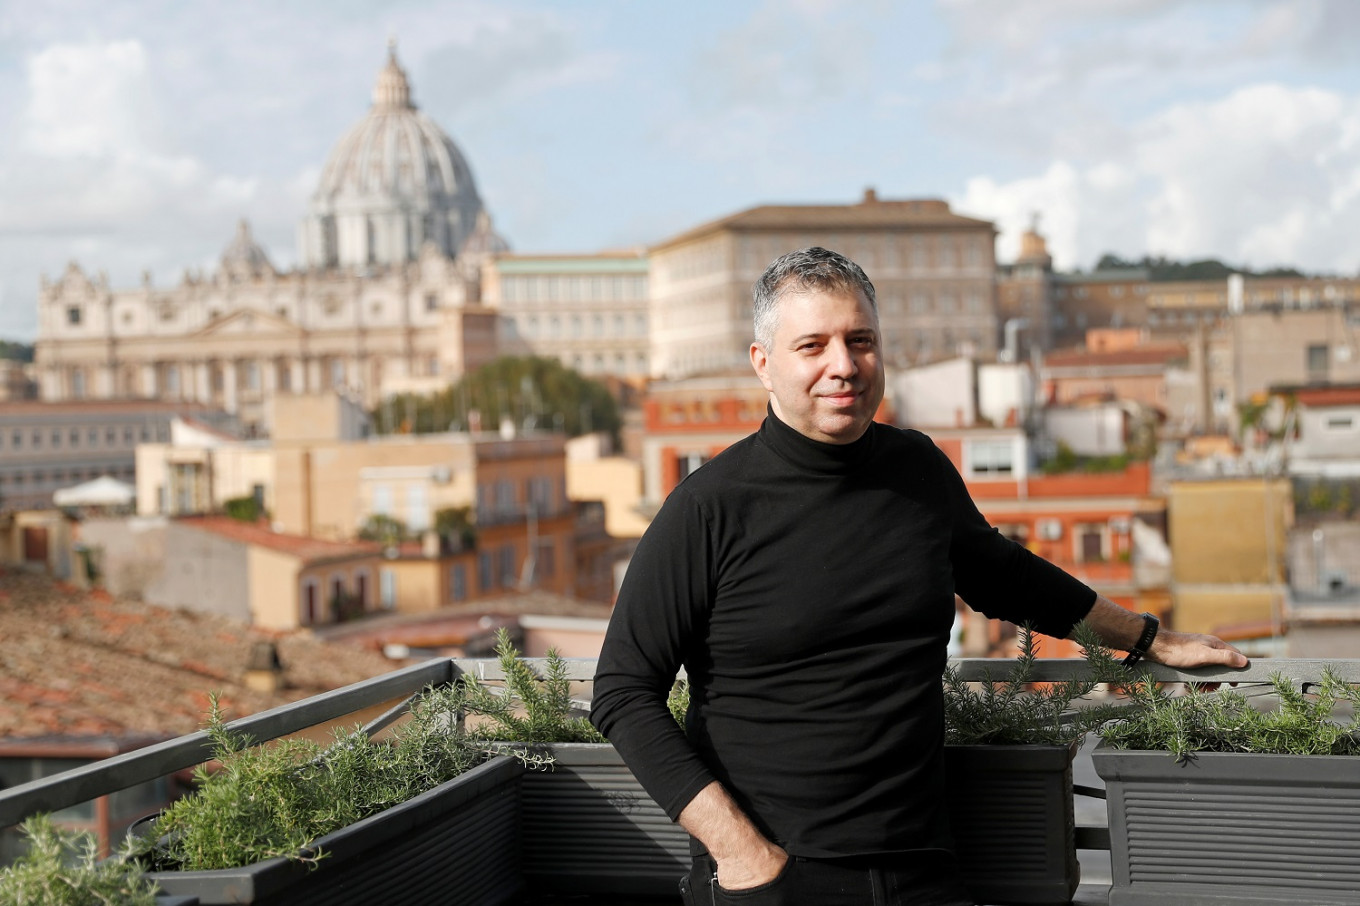 Jewish director sends message of hope in Pope Francis film